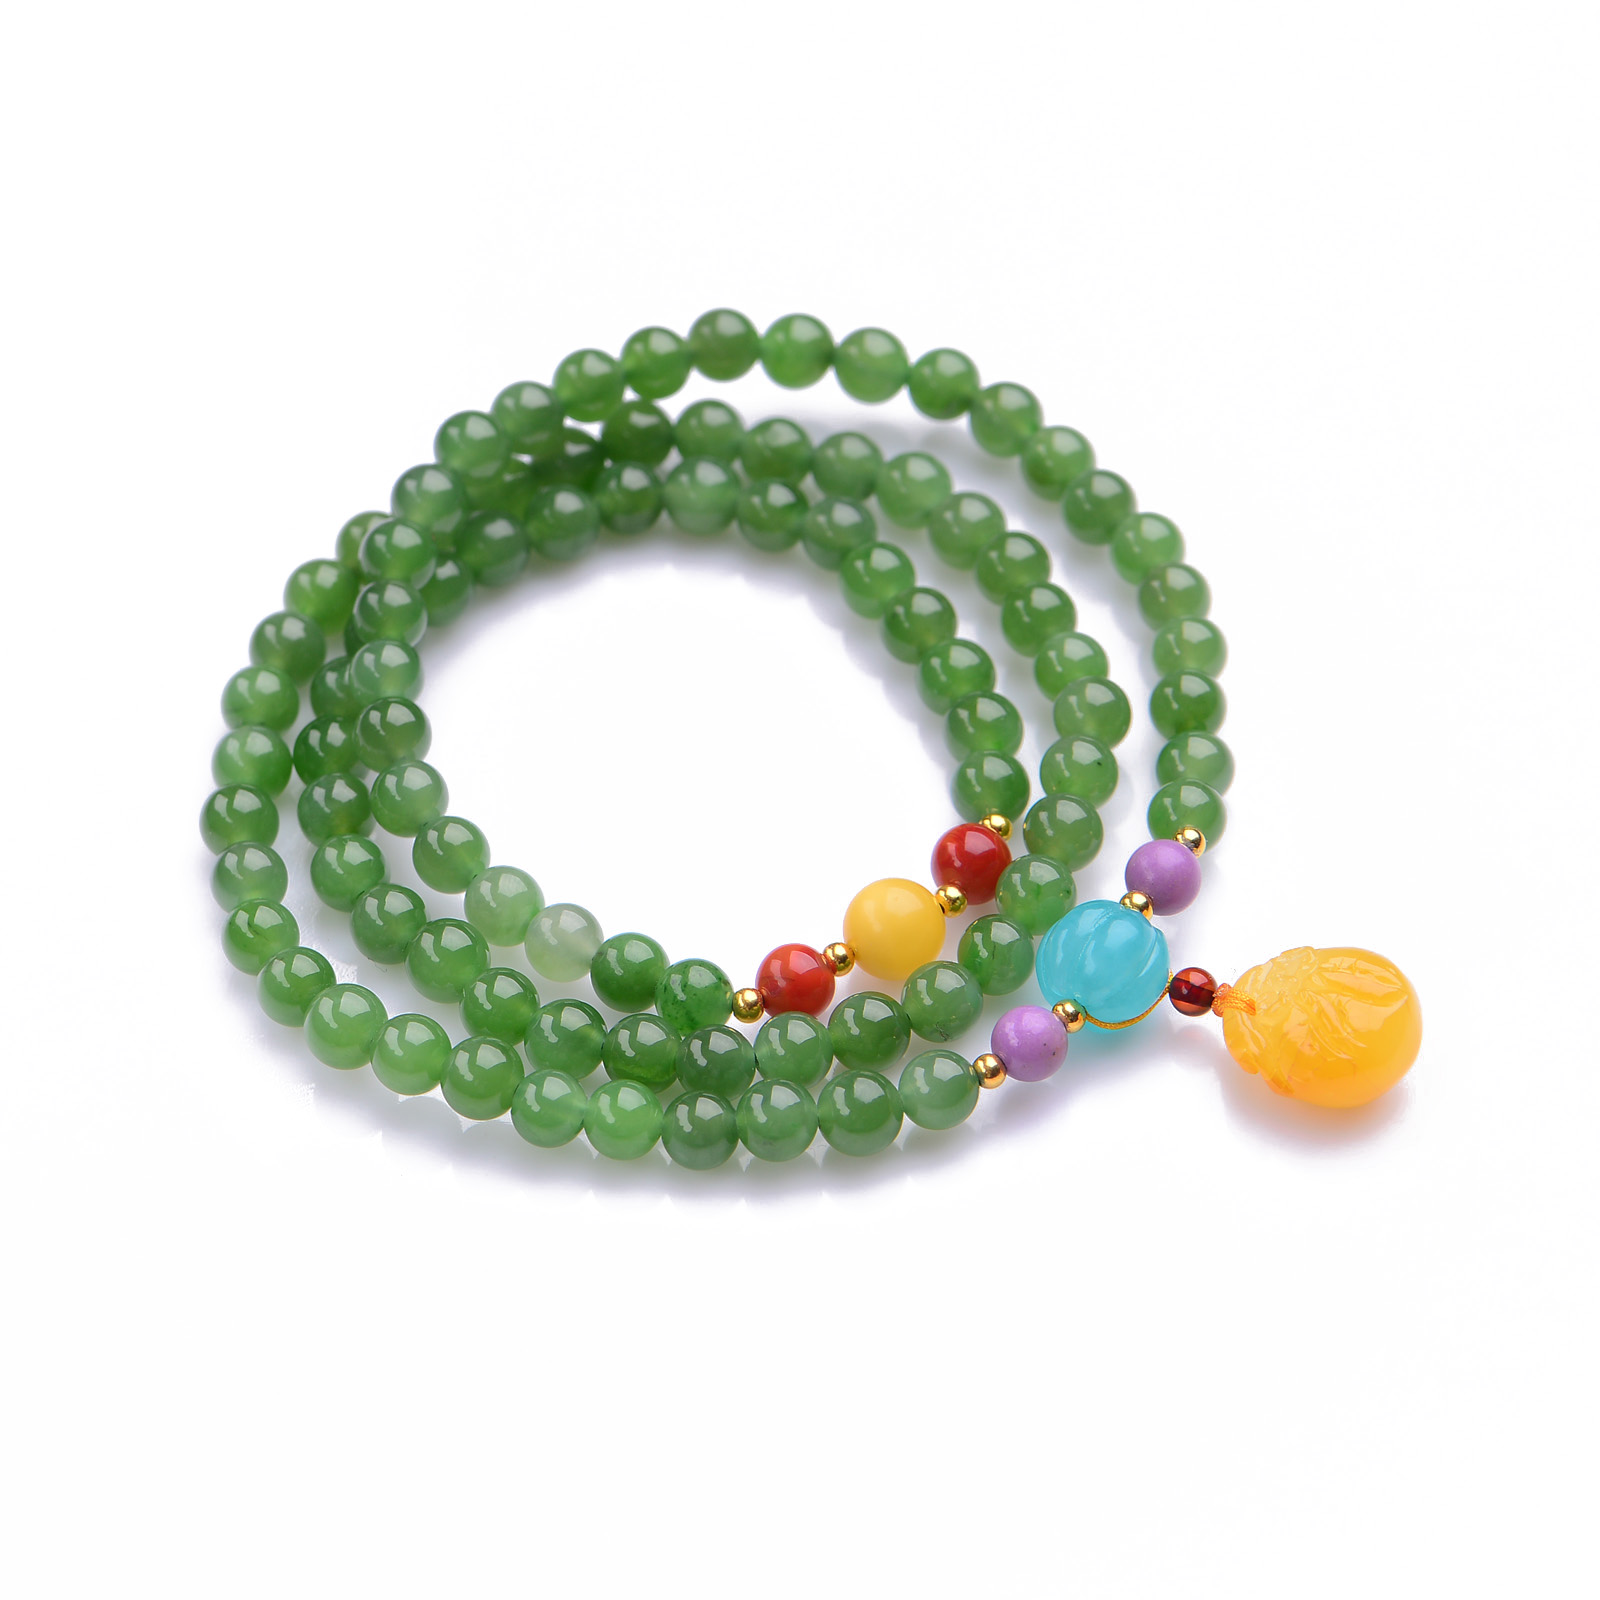 Handmade Authentic Green Crystal Bracelets 5.8mm